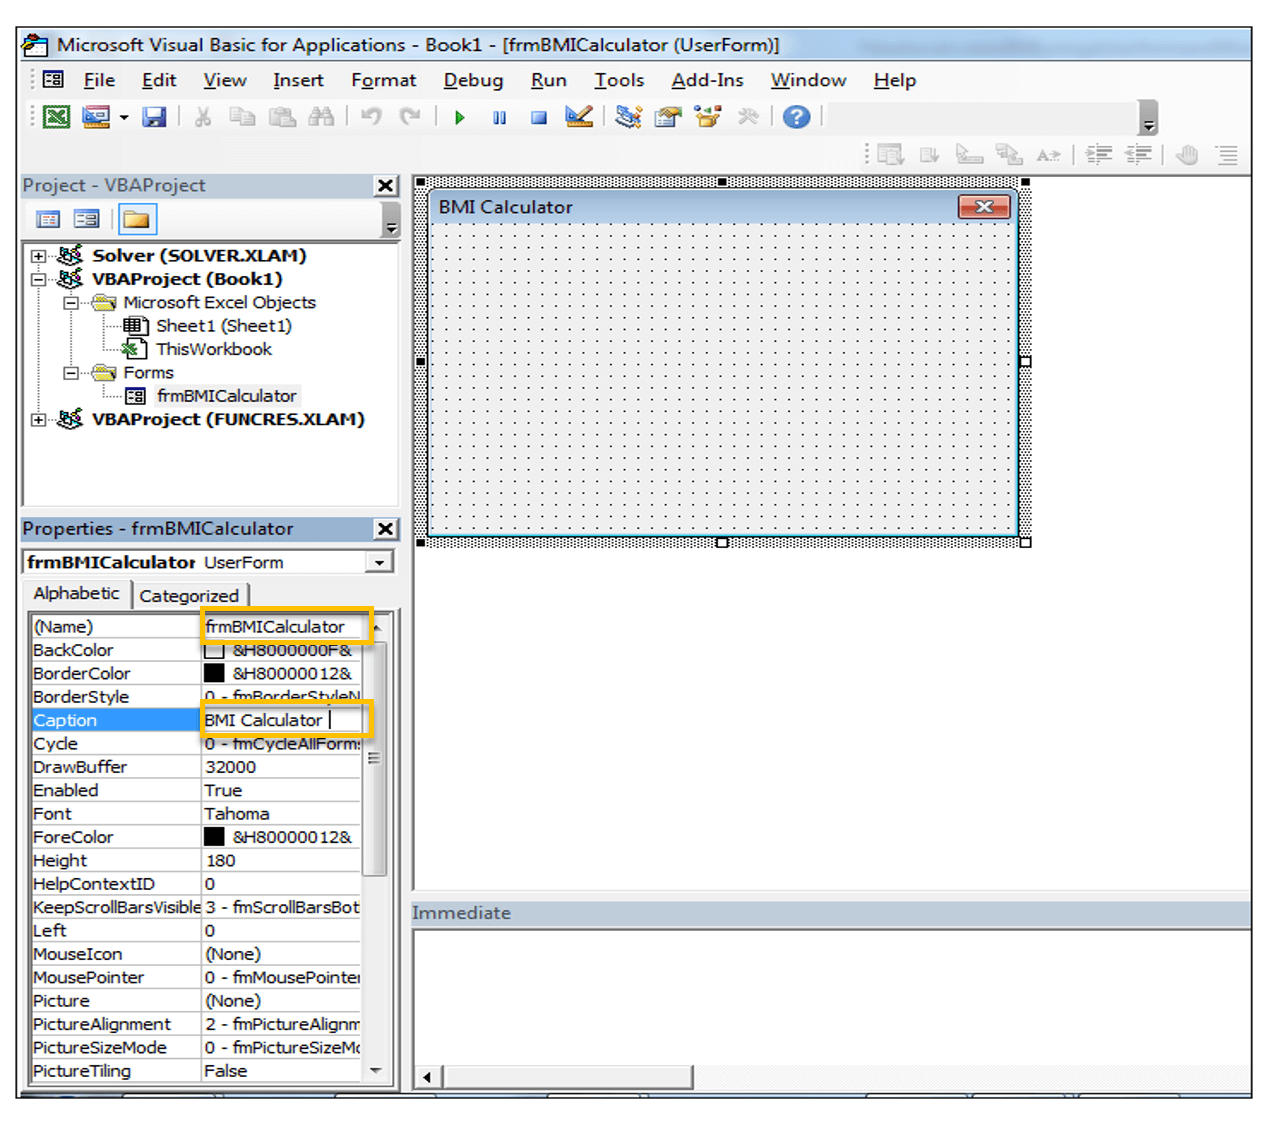 8) Change The Name Of The Userform, In The Properties Window, To  Frmbmicalculator And The Caption To Bmi Calculator